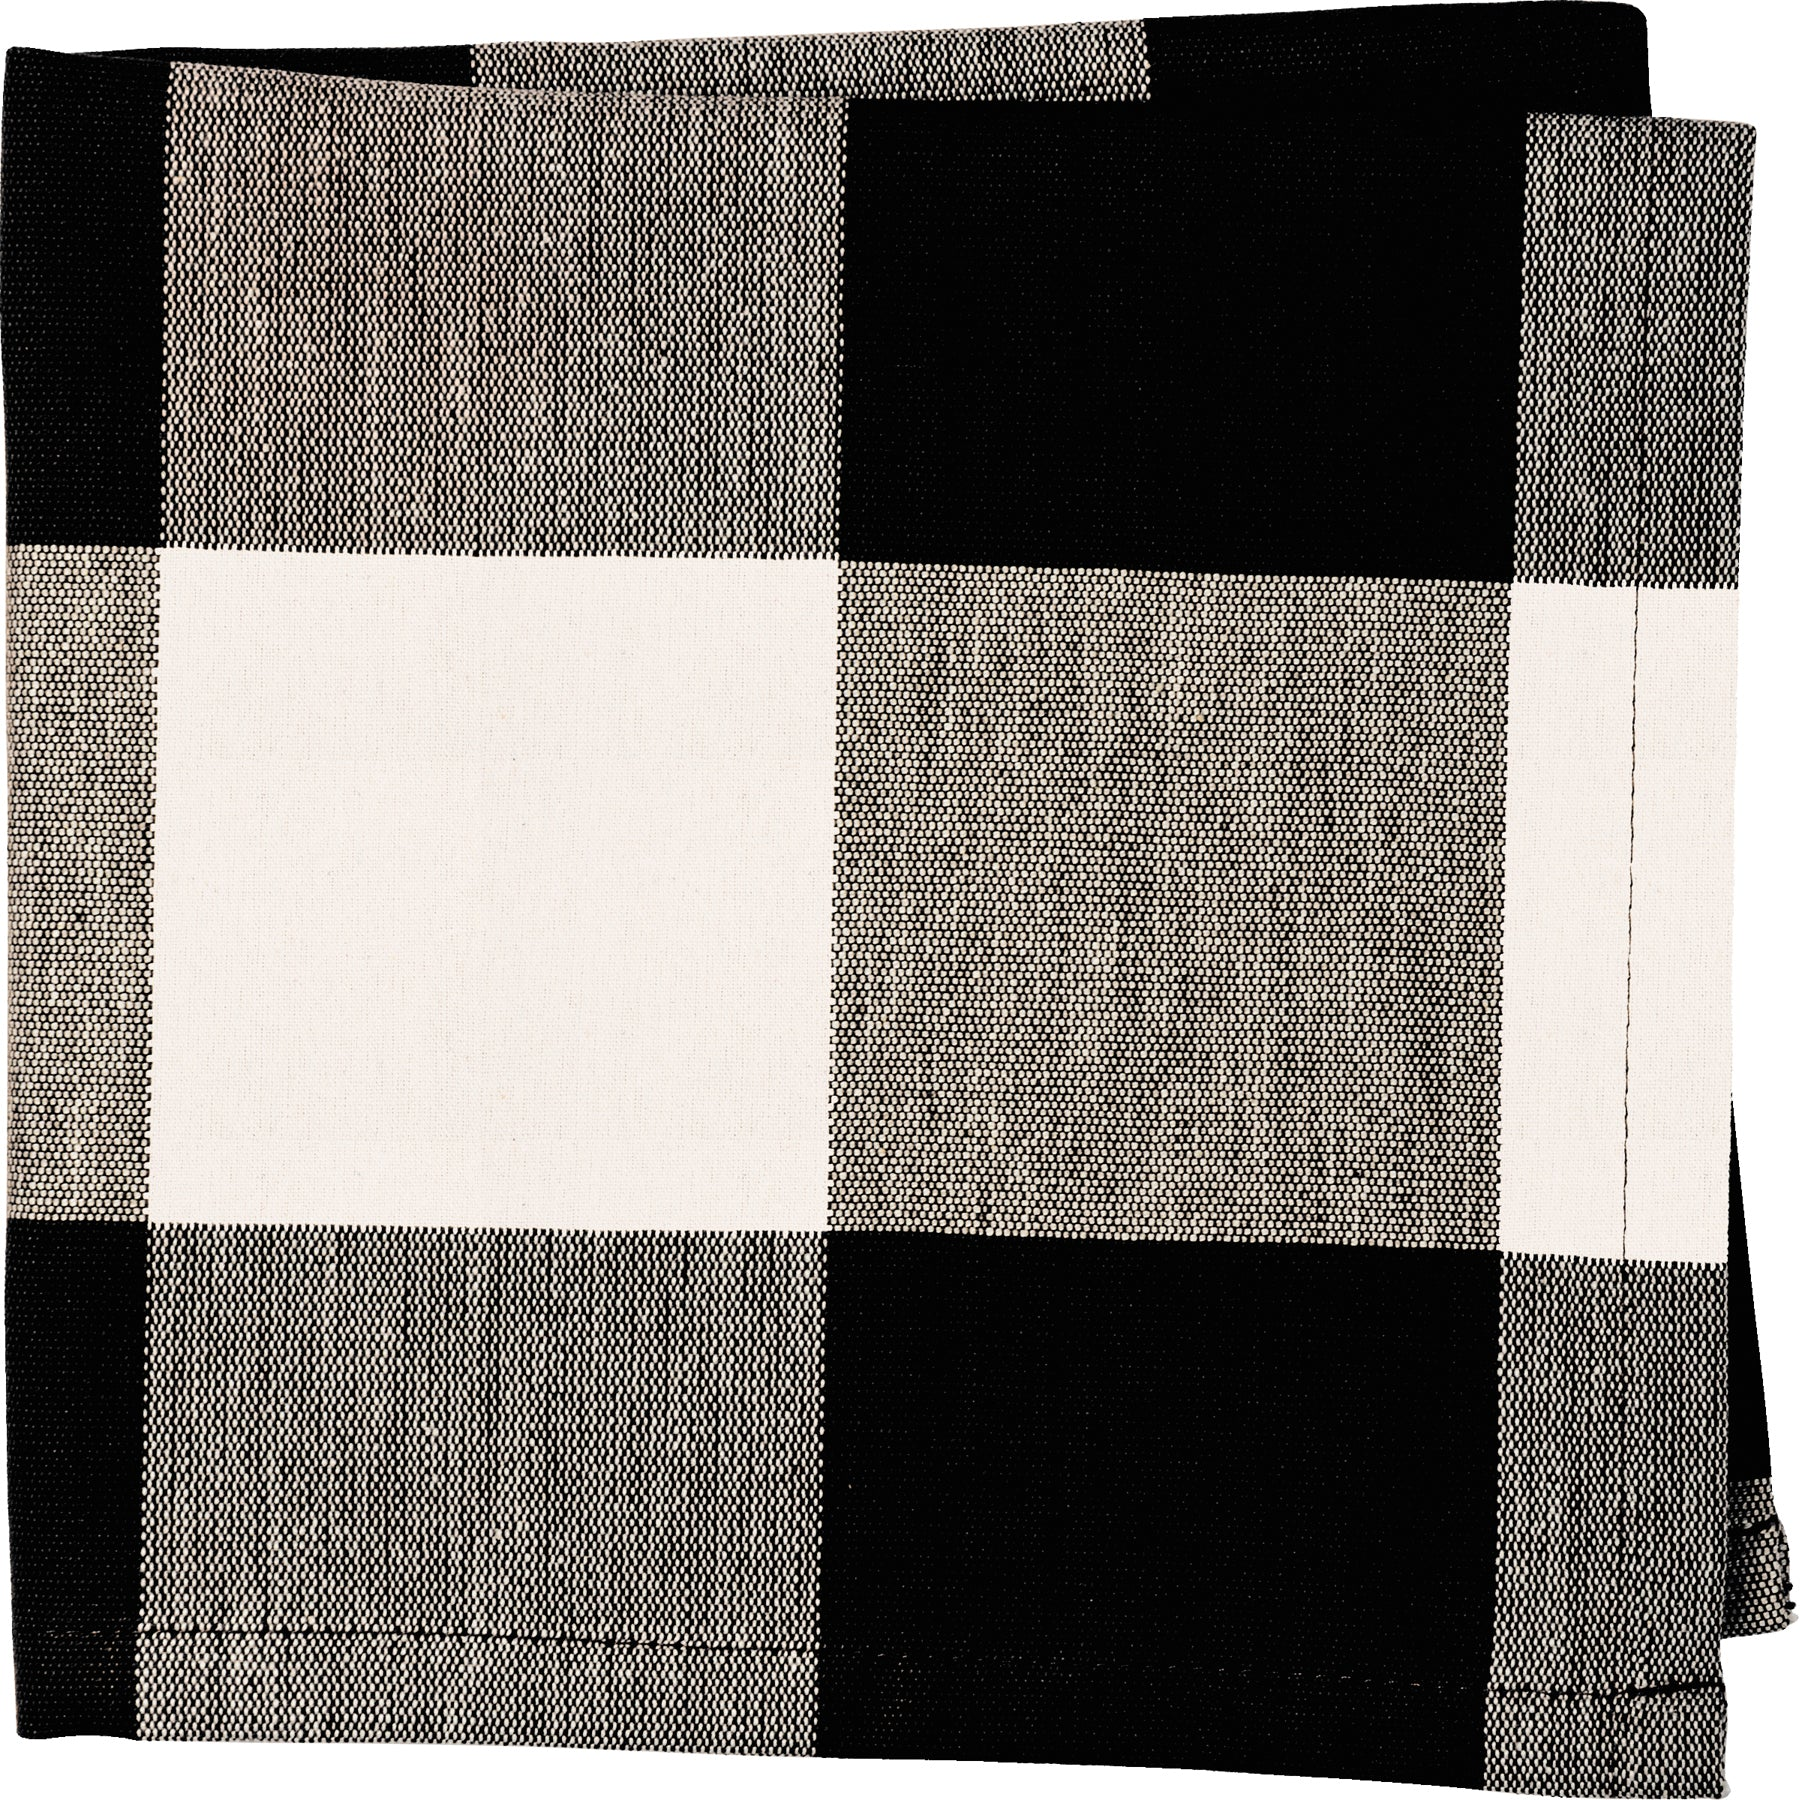 Napkin - Black Buff Check